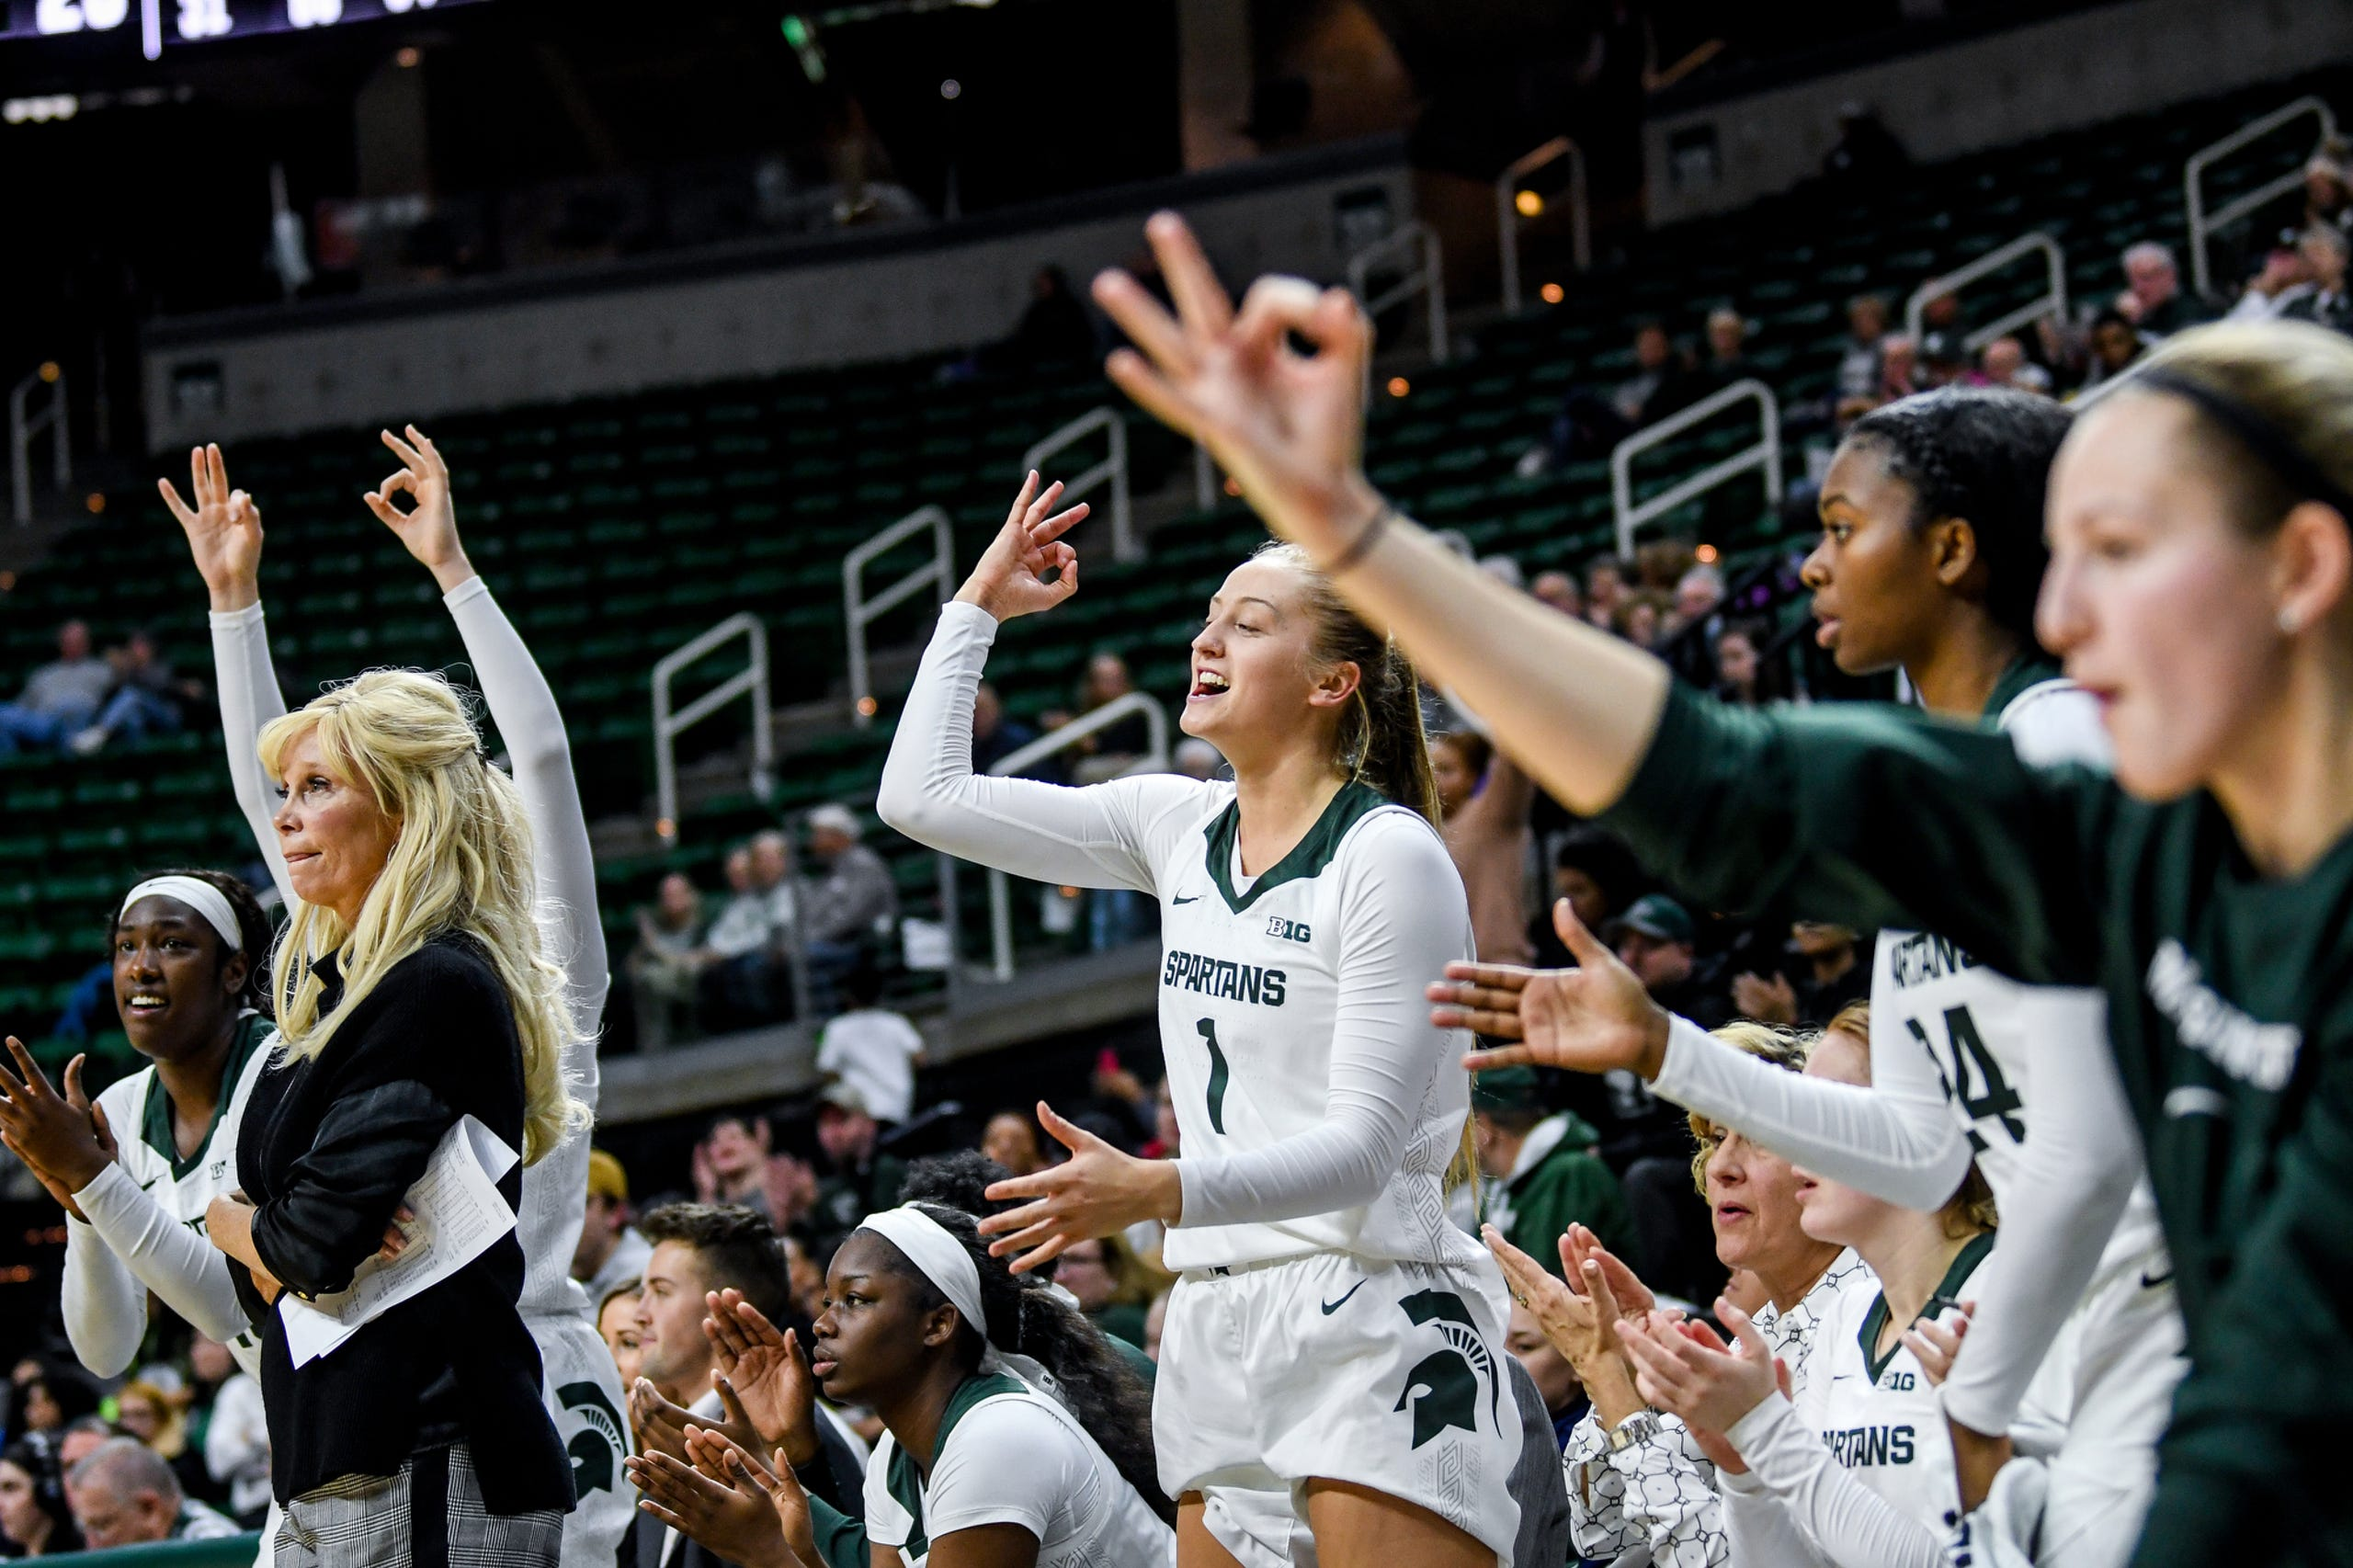 Michigan State's bench reacts after teammate Alyza Winston makes a 3-pointer during the third quarter on Tuesday, Nov. 5, 2019, at the Breslin Center in East Lansing.